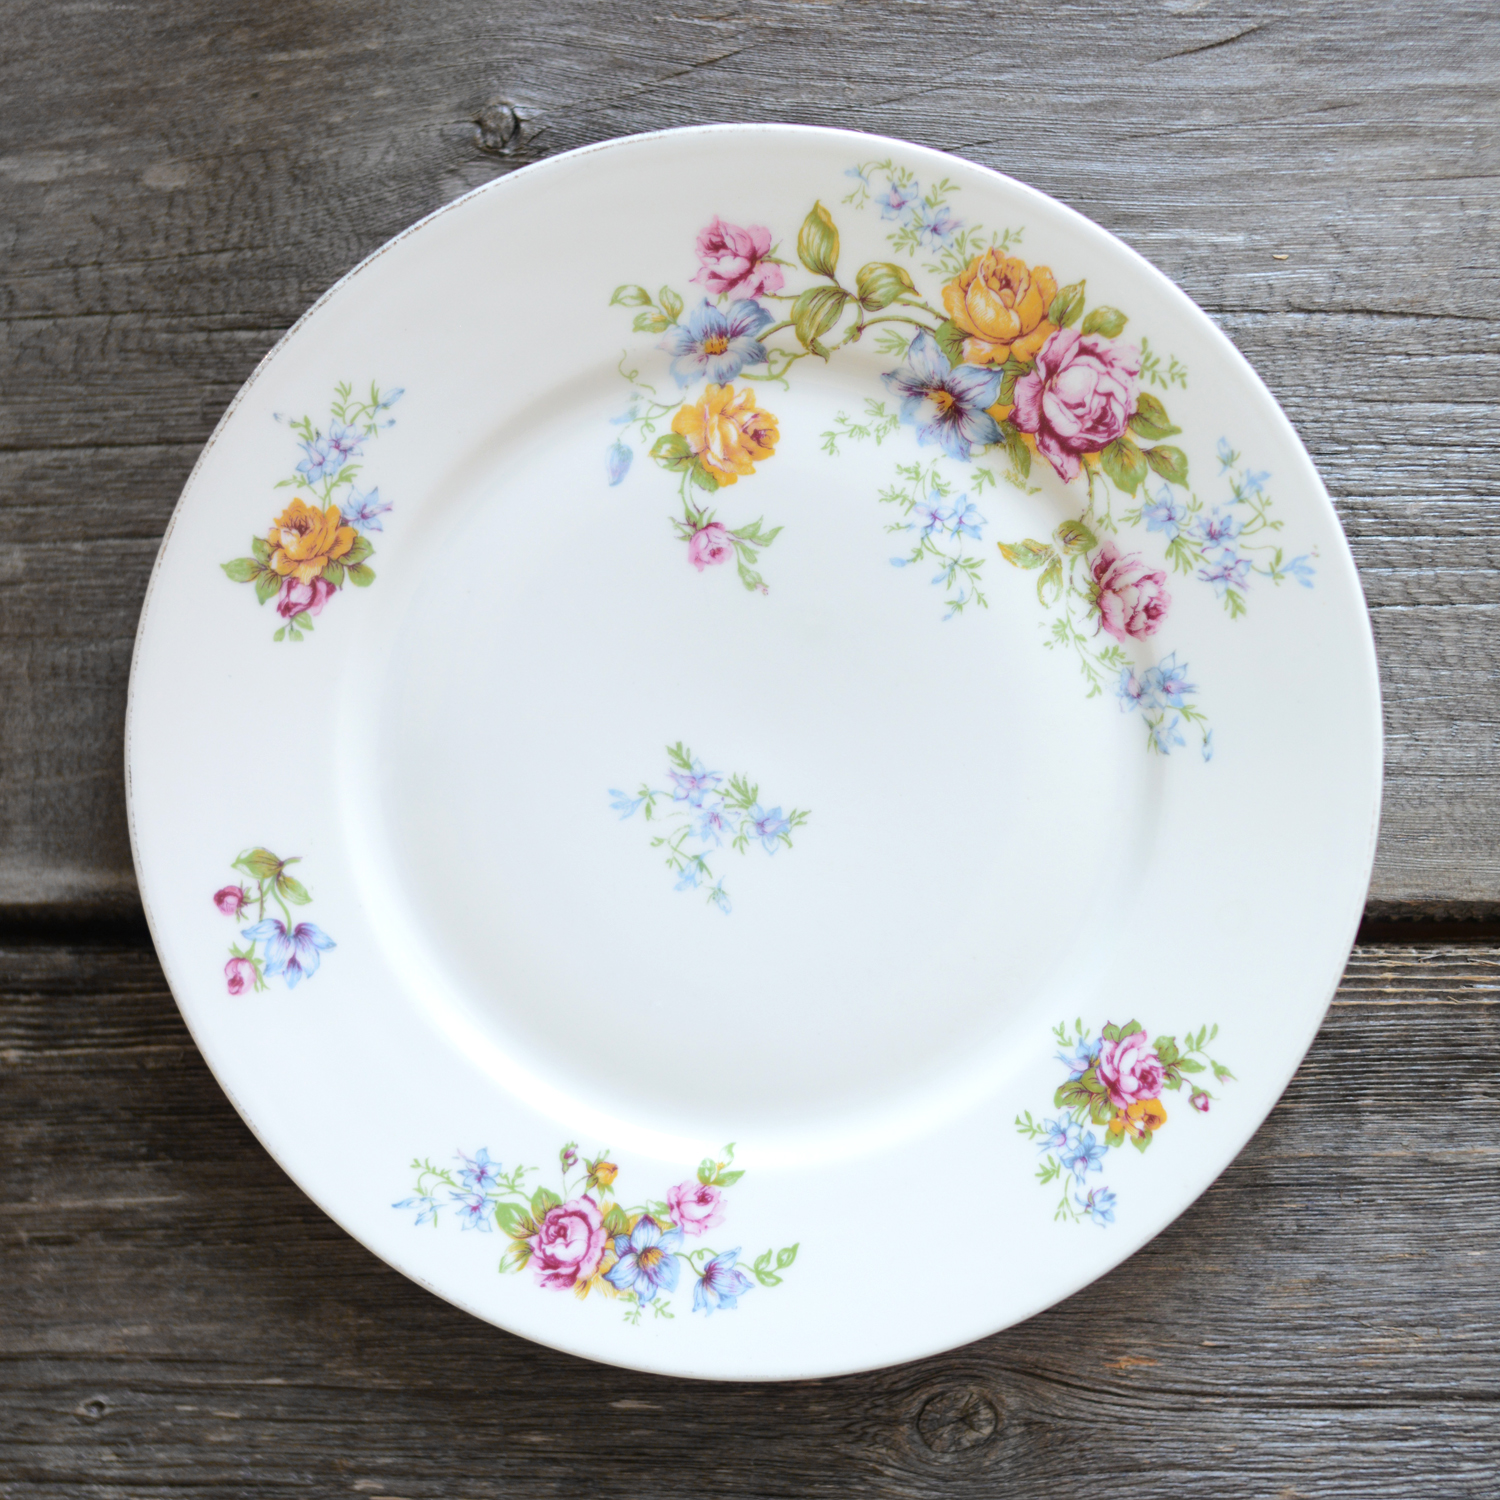 legrand dinner plate - 4 available